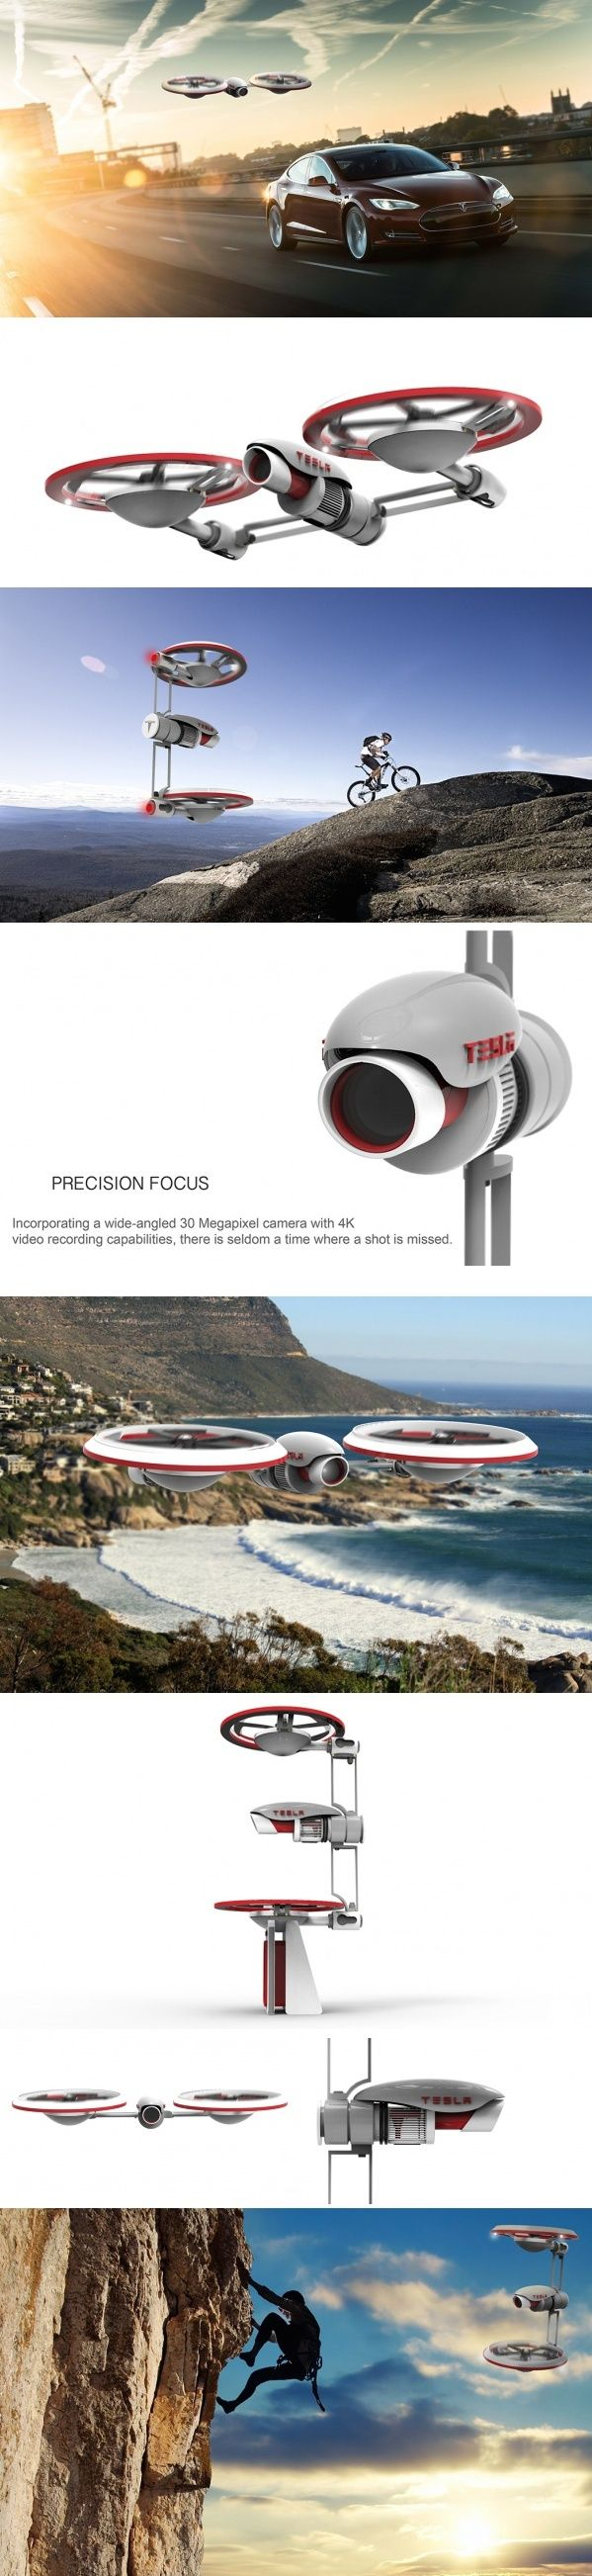 The Tesla Drone is unique reinterpretation of drone ingenuity.  #Drone #Tesla #YankoDesign #Technology